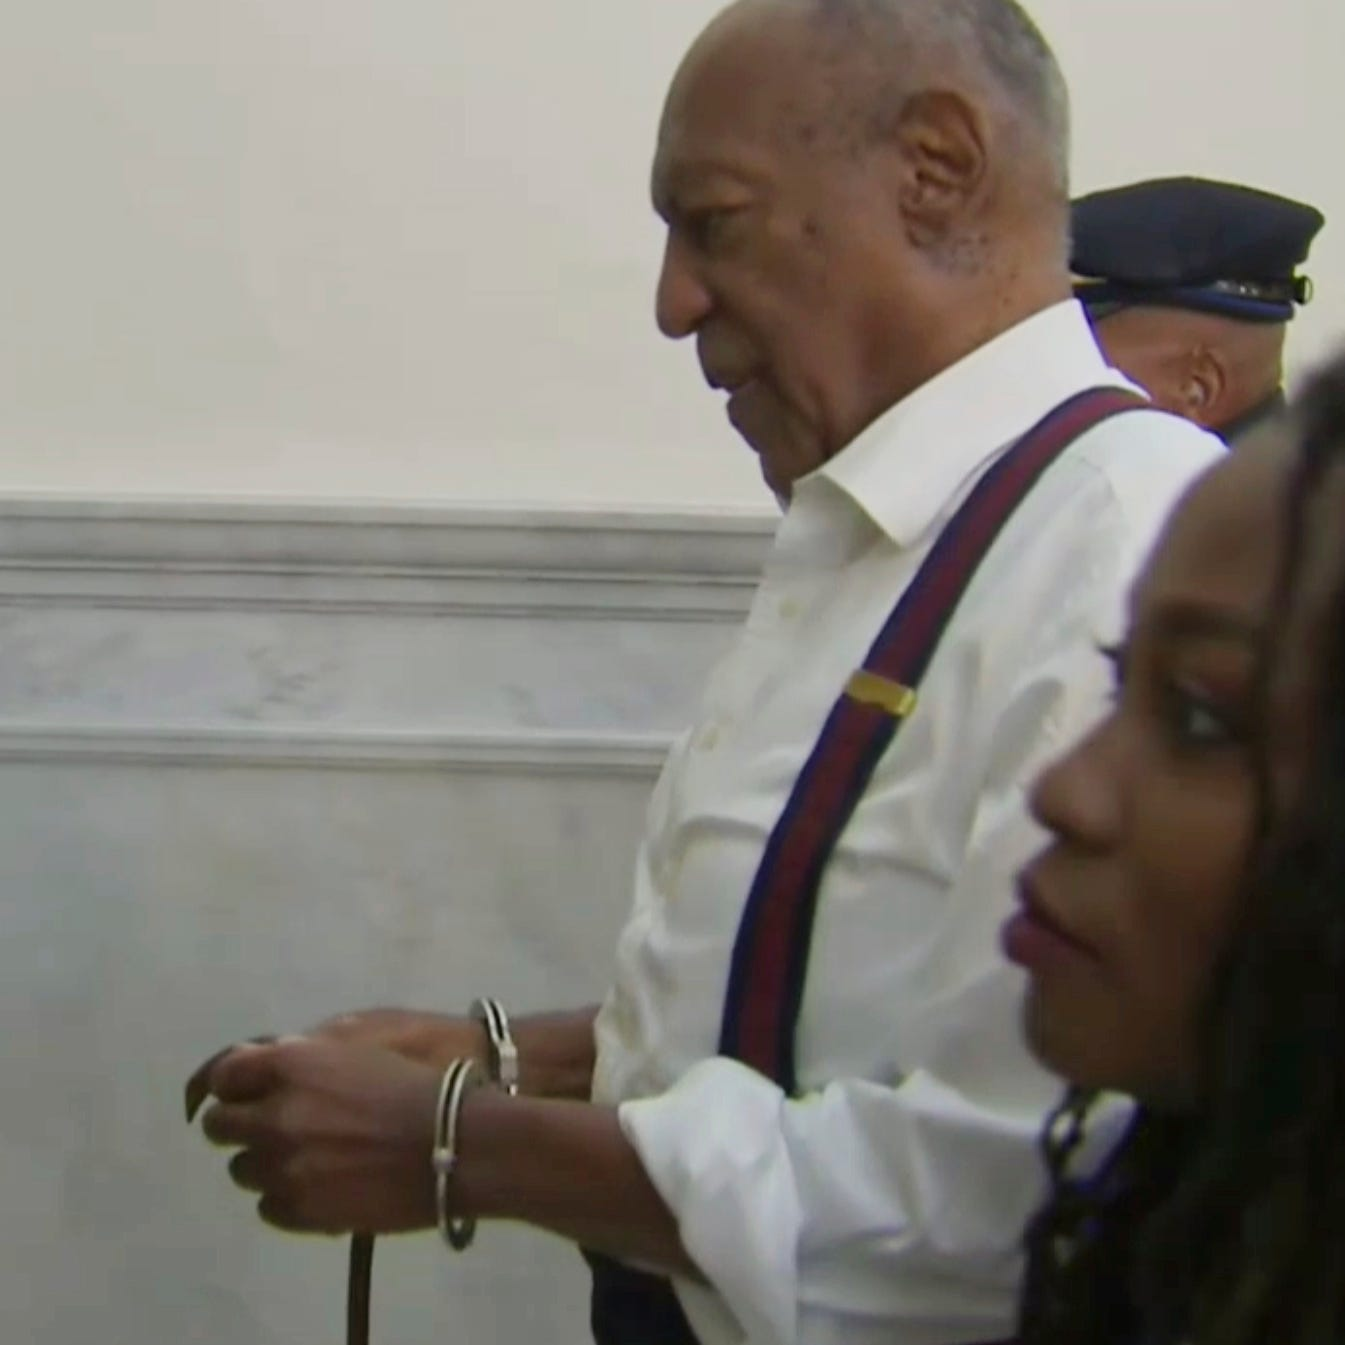 Bill Cosby sentenced to three to 10 years in state prison, remanded to custody immediately